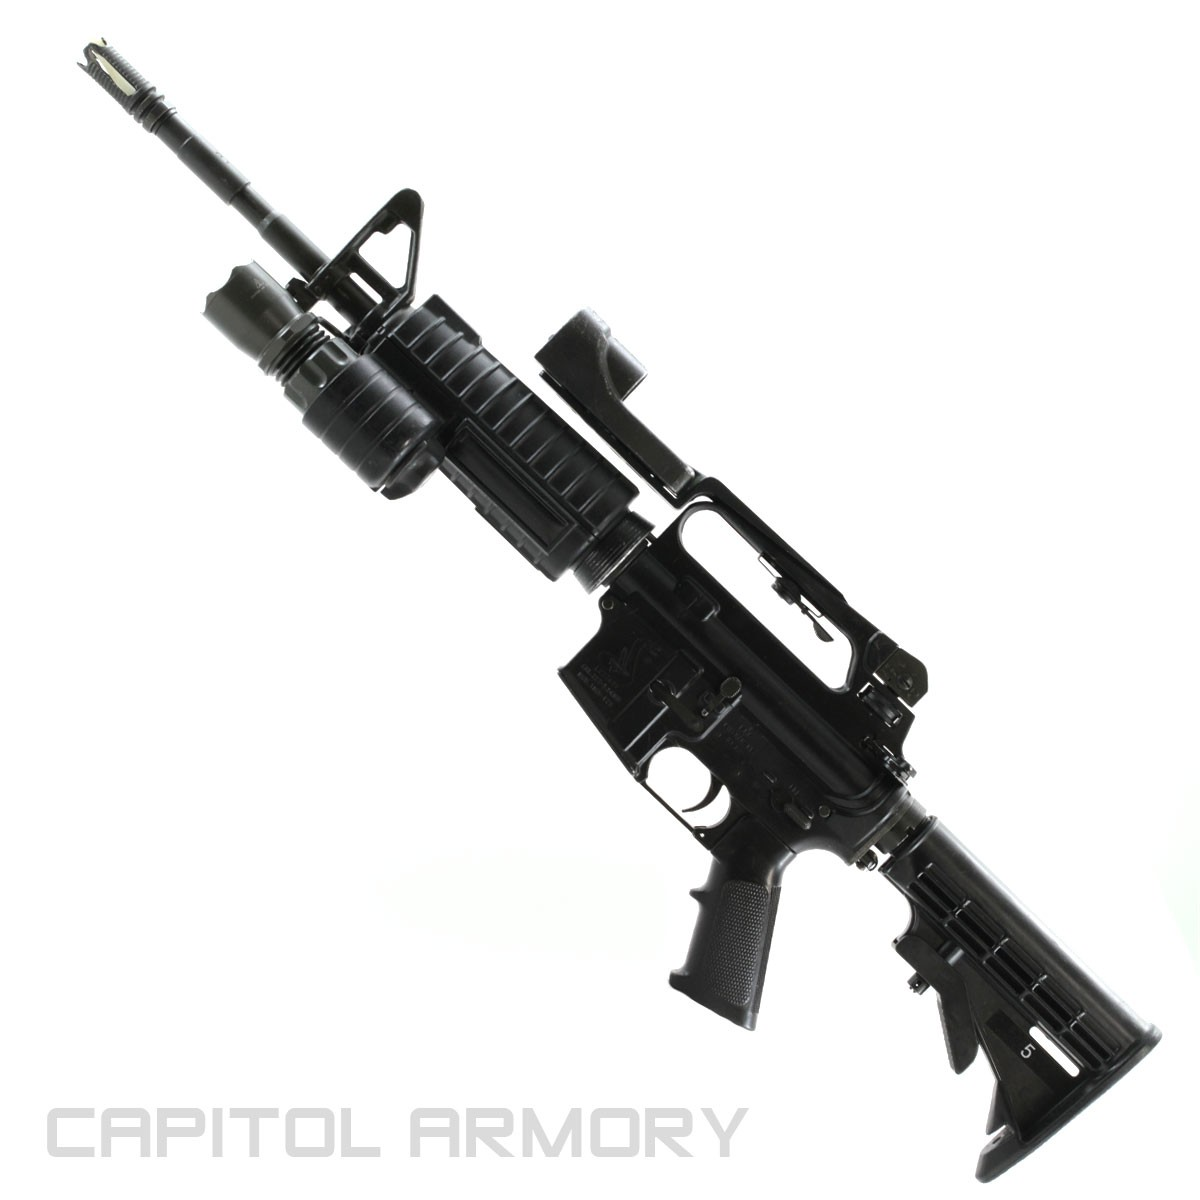 Bushmaster AR15 Police Trade In - Capitol Armory